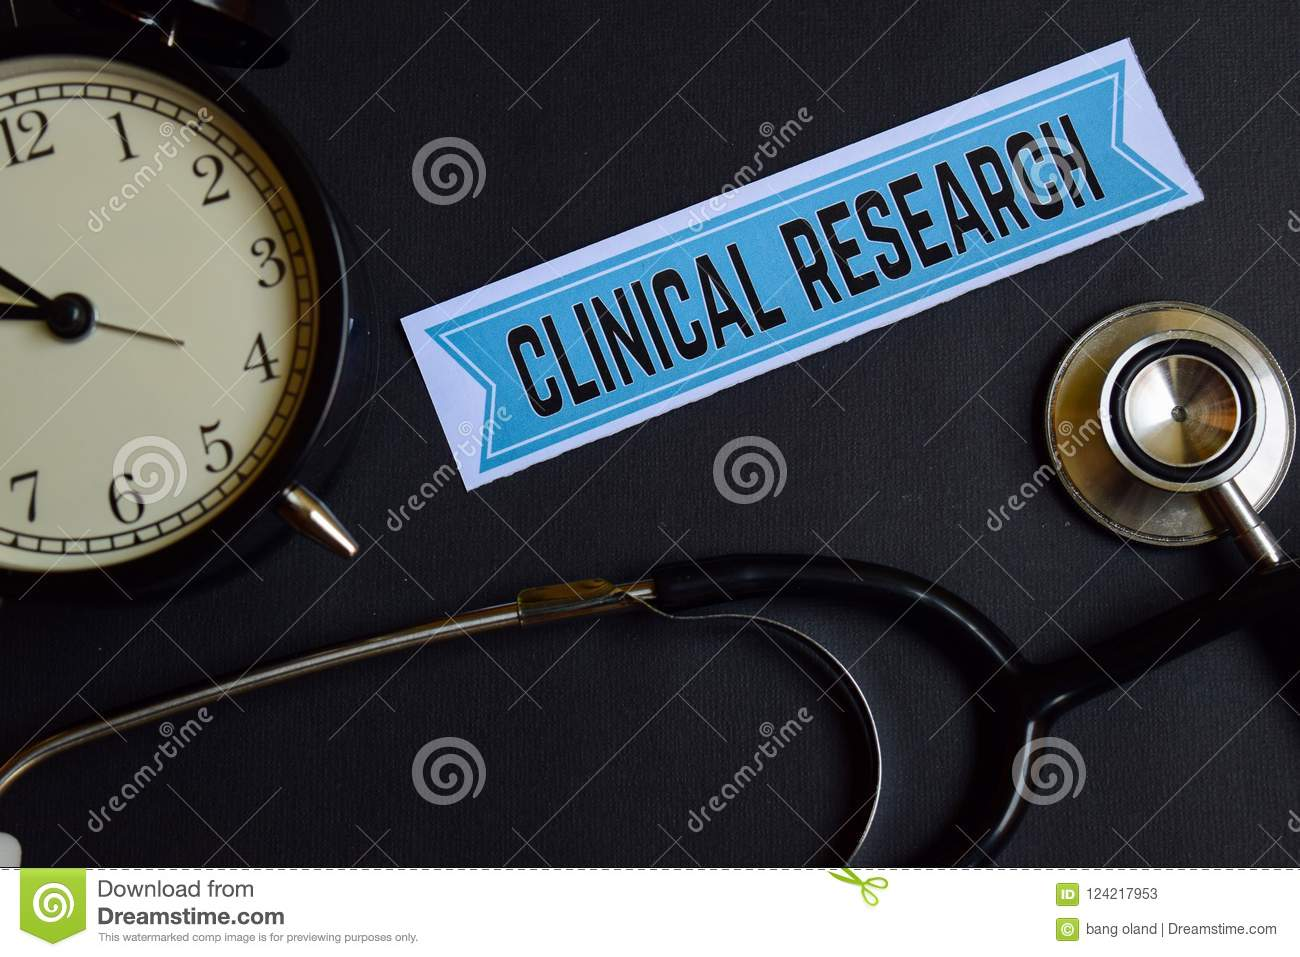 Clinical Research on the print paper with Healthcare Concept Inspiration. alarm clock, Black stethoscope.